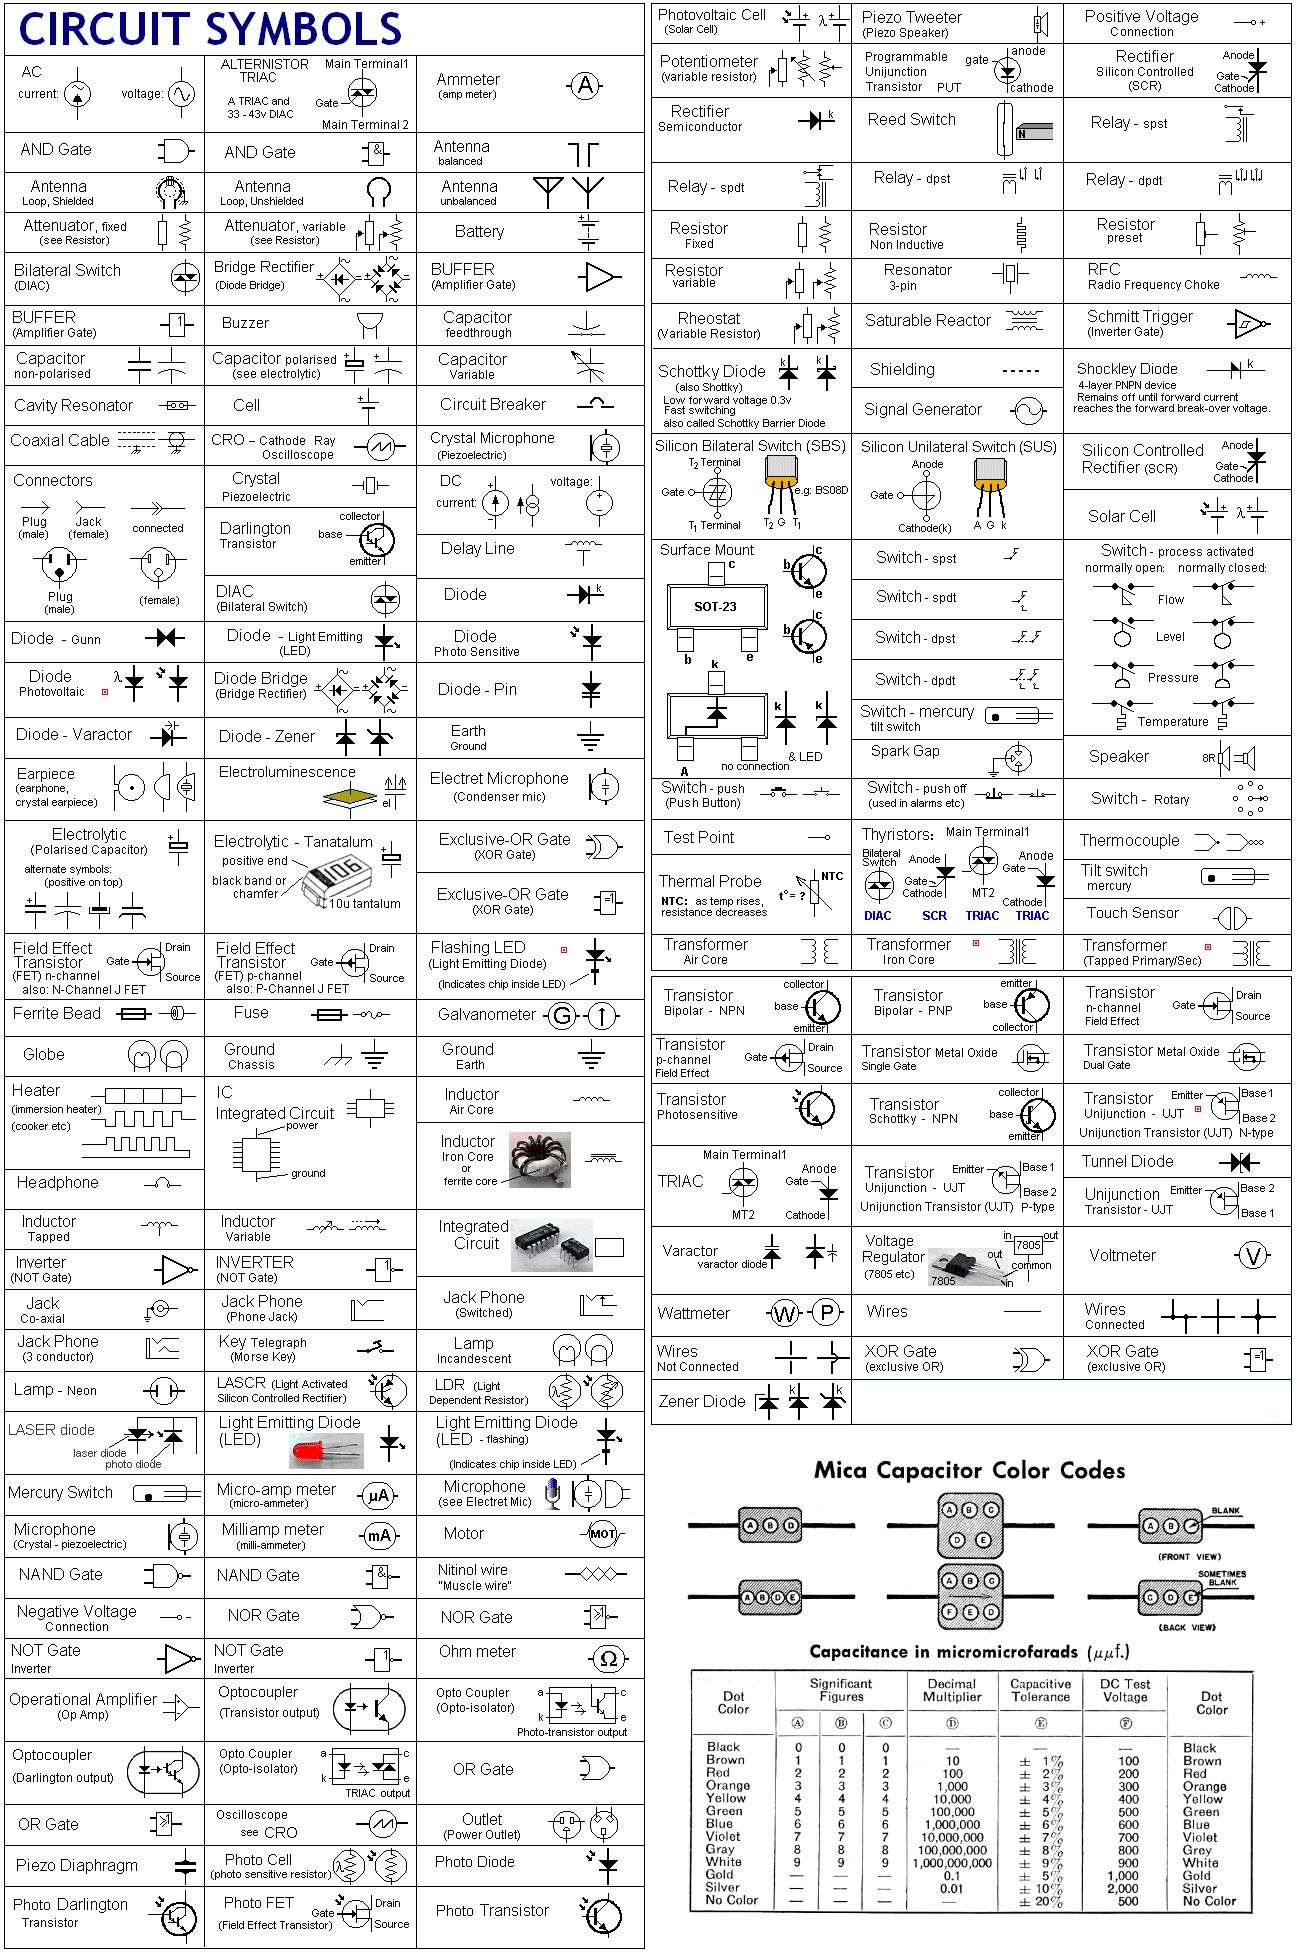 6c64fb84c8e162b28334051891c290f4 schematic symbols chart electric circuit symbols a considerably wiring diagram symbols chart at bayanpartner.co